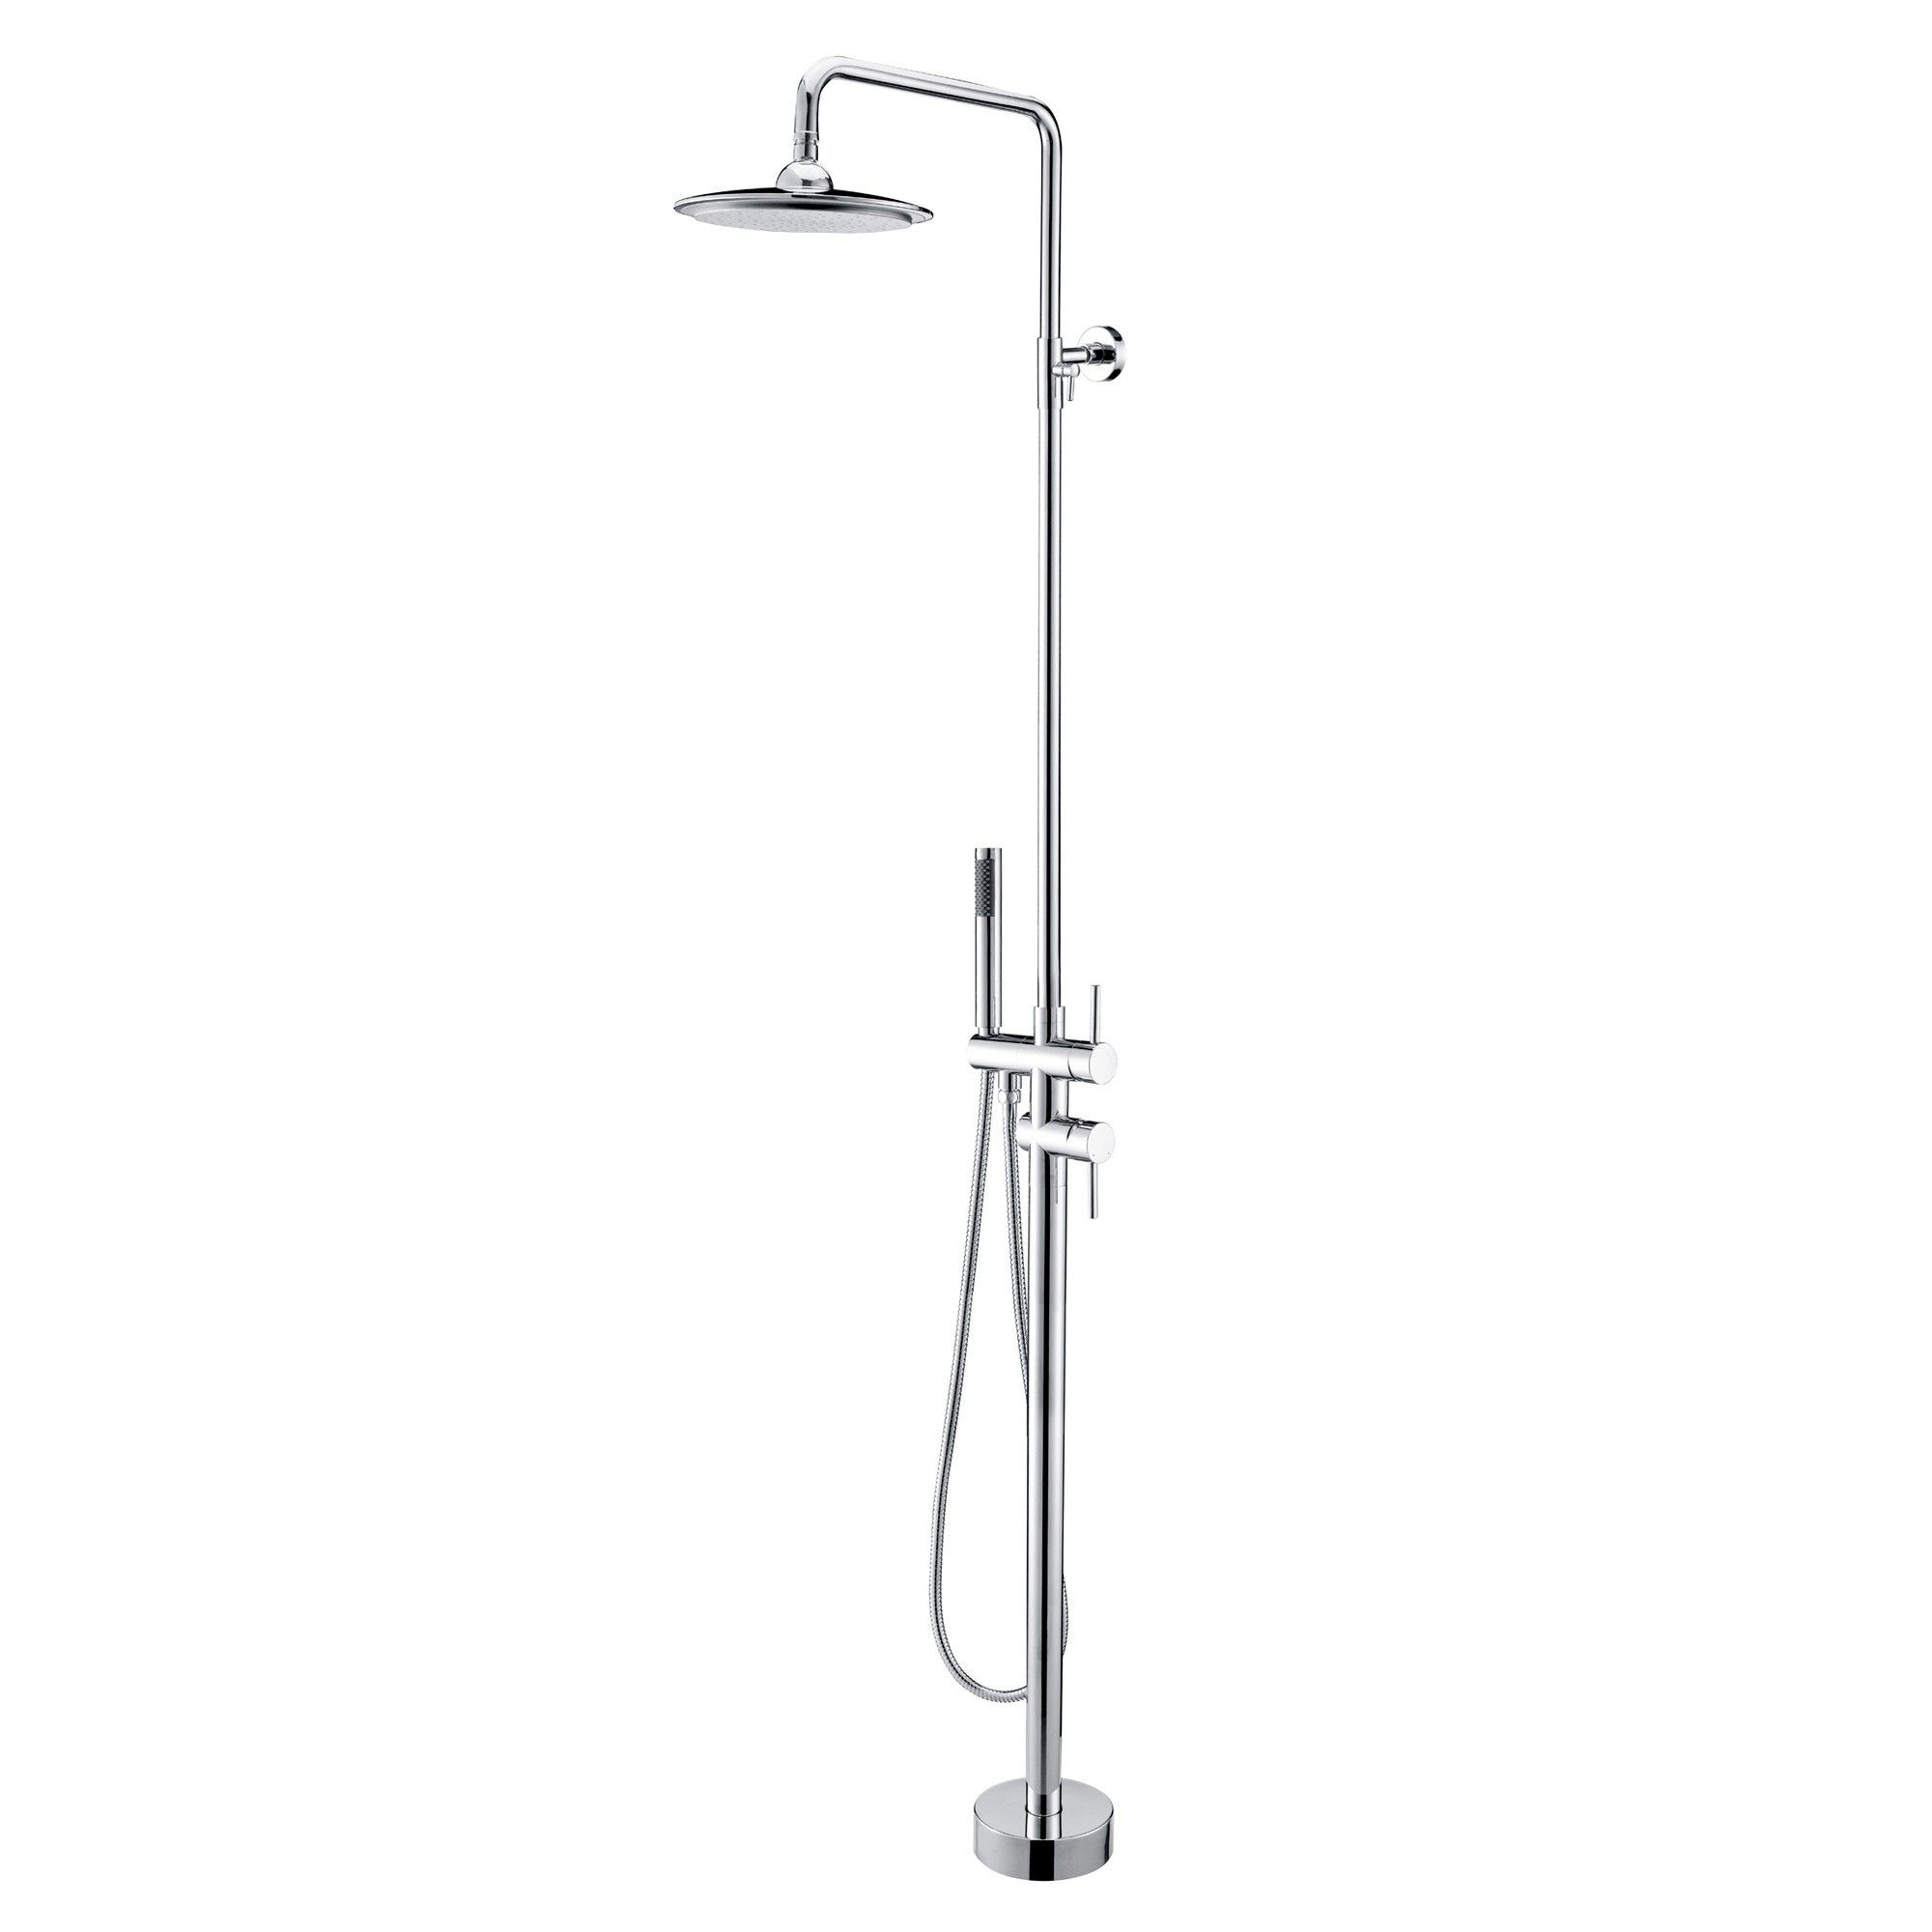 Search Results For Faucets Shower Faucets Shower Systems Brewst Freestanding Rain Shower Head And Hand Shower Shower Faucet Rain Shower Standing Shower